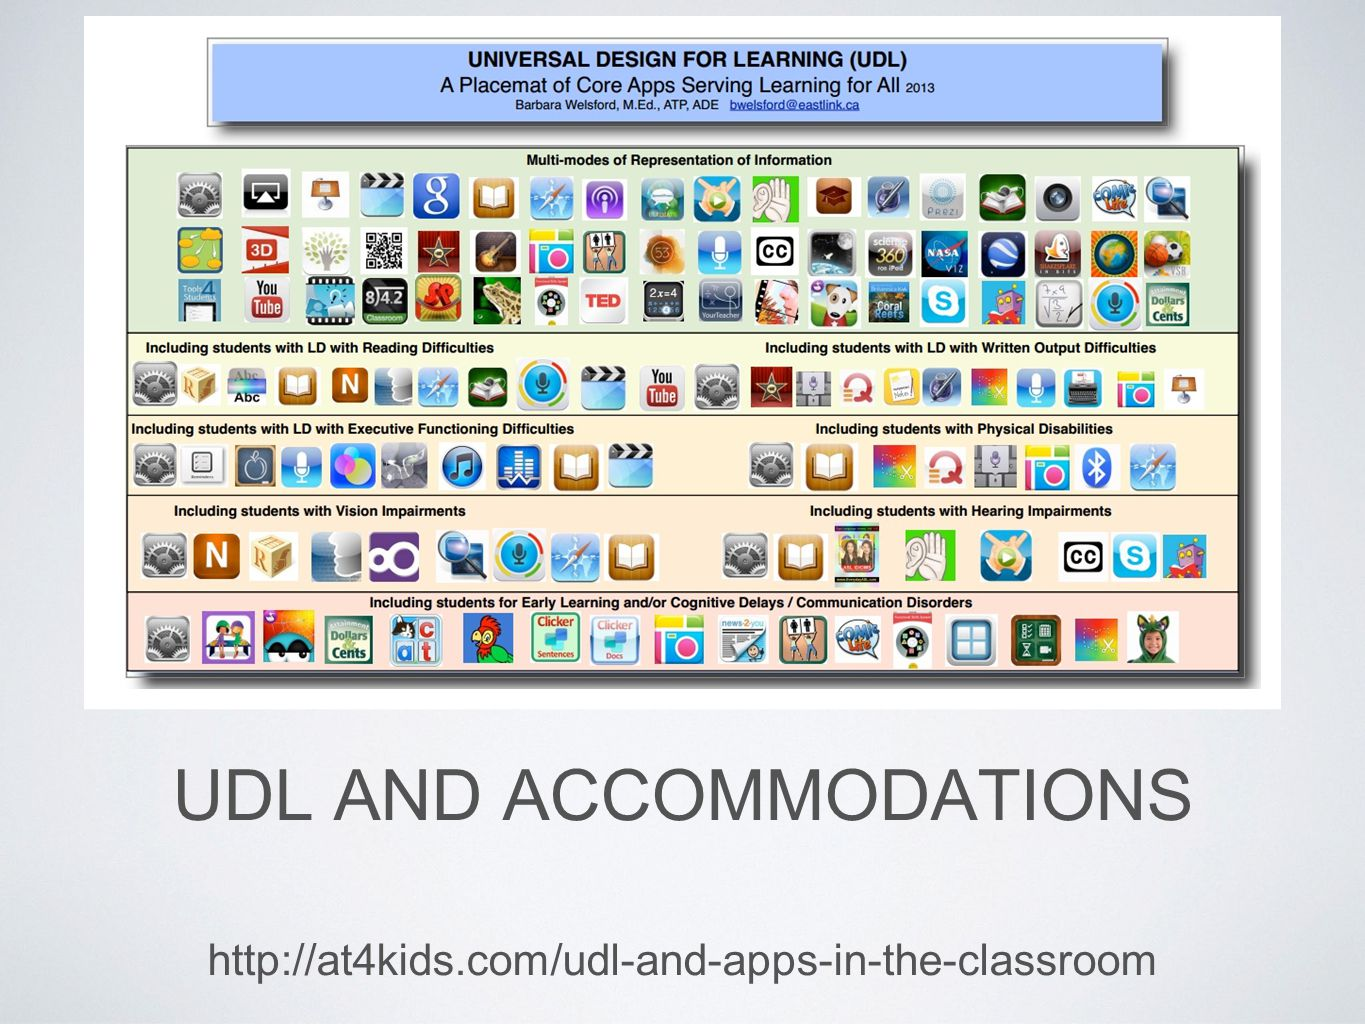 UDL AND ACCOMMODATIONS http://at4kids.com/udl-and-apps-in-the-classroom